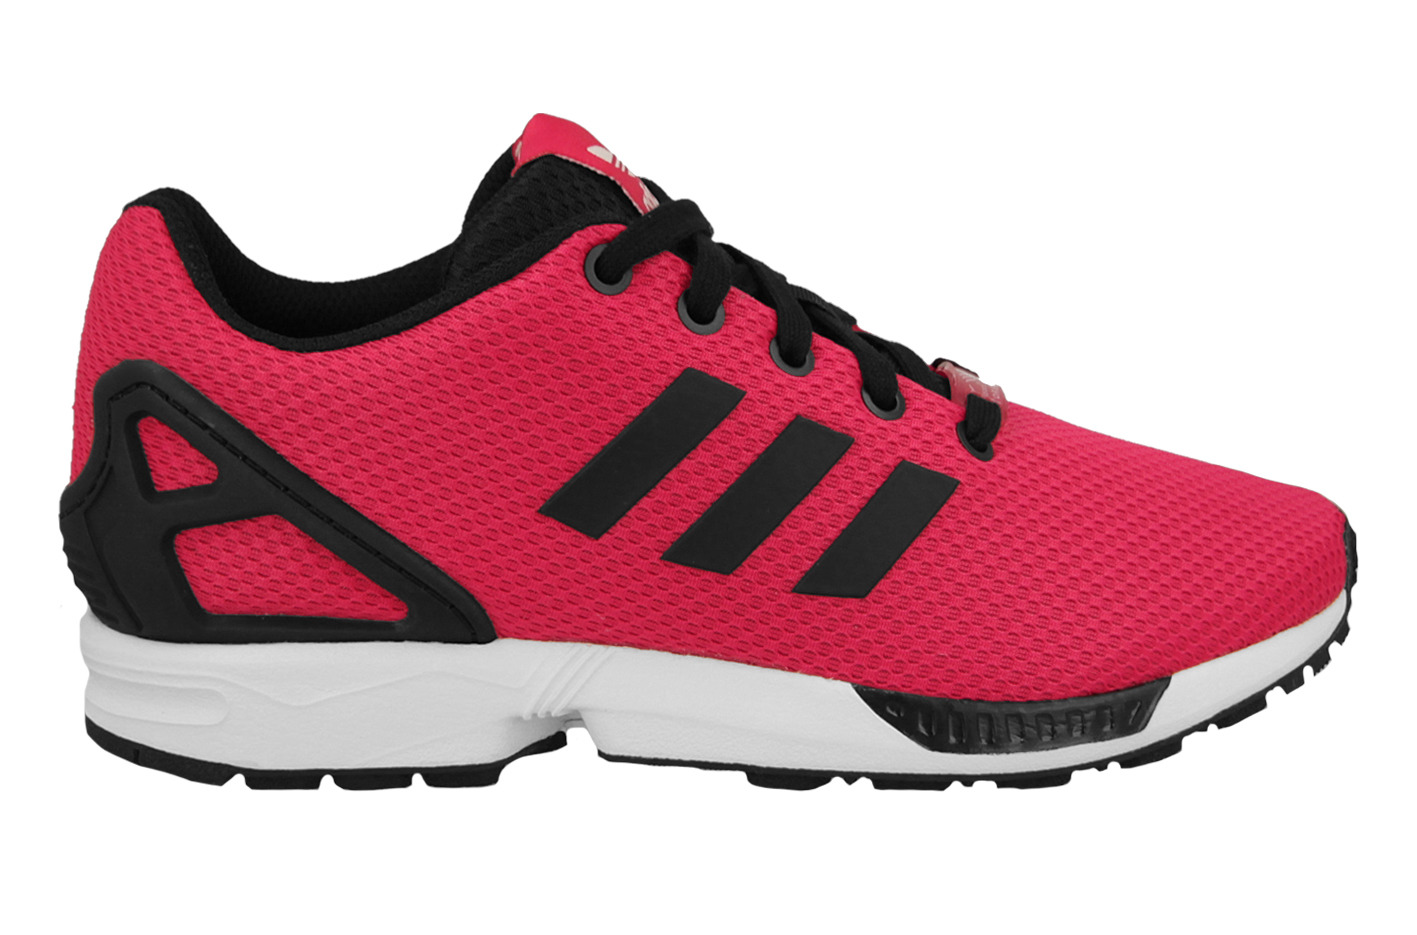 sneaker shoes adidas originals zx flux m19387 best shoes. Black Bedroom Furniture Sets. Home Design Ideas